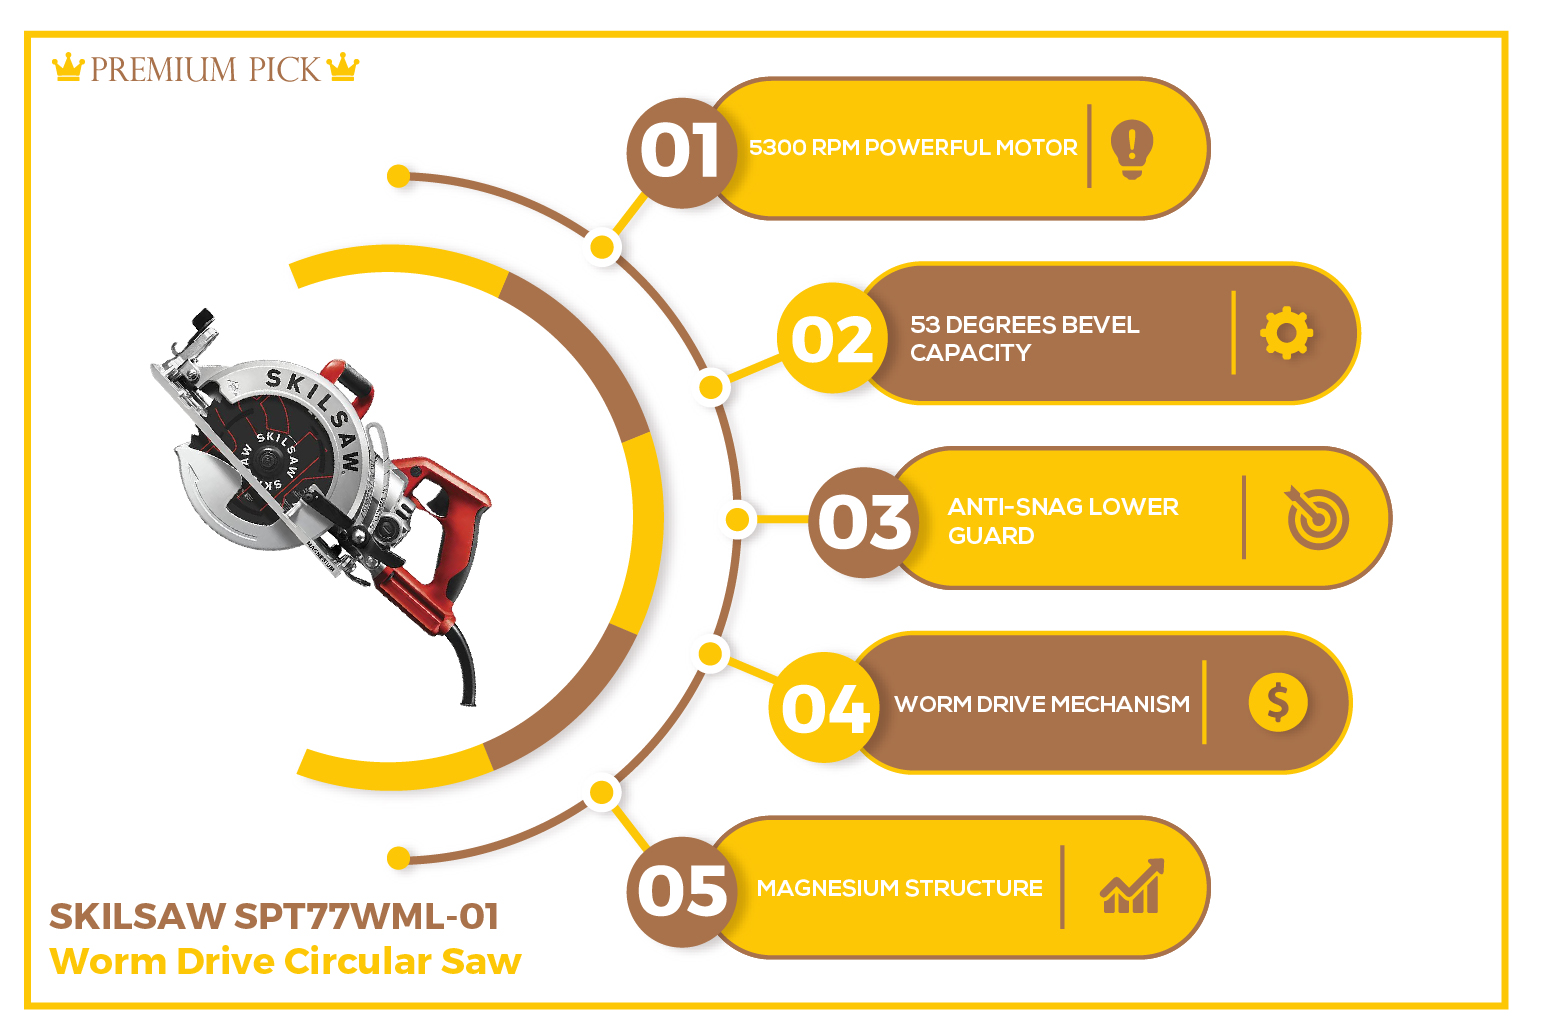 SKILSAW SPT77WML-01 - Best Cordless Circular Saw infograph